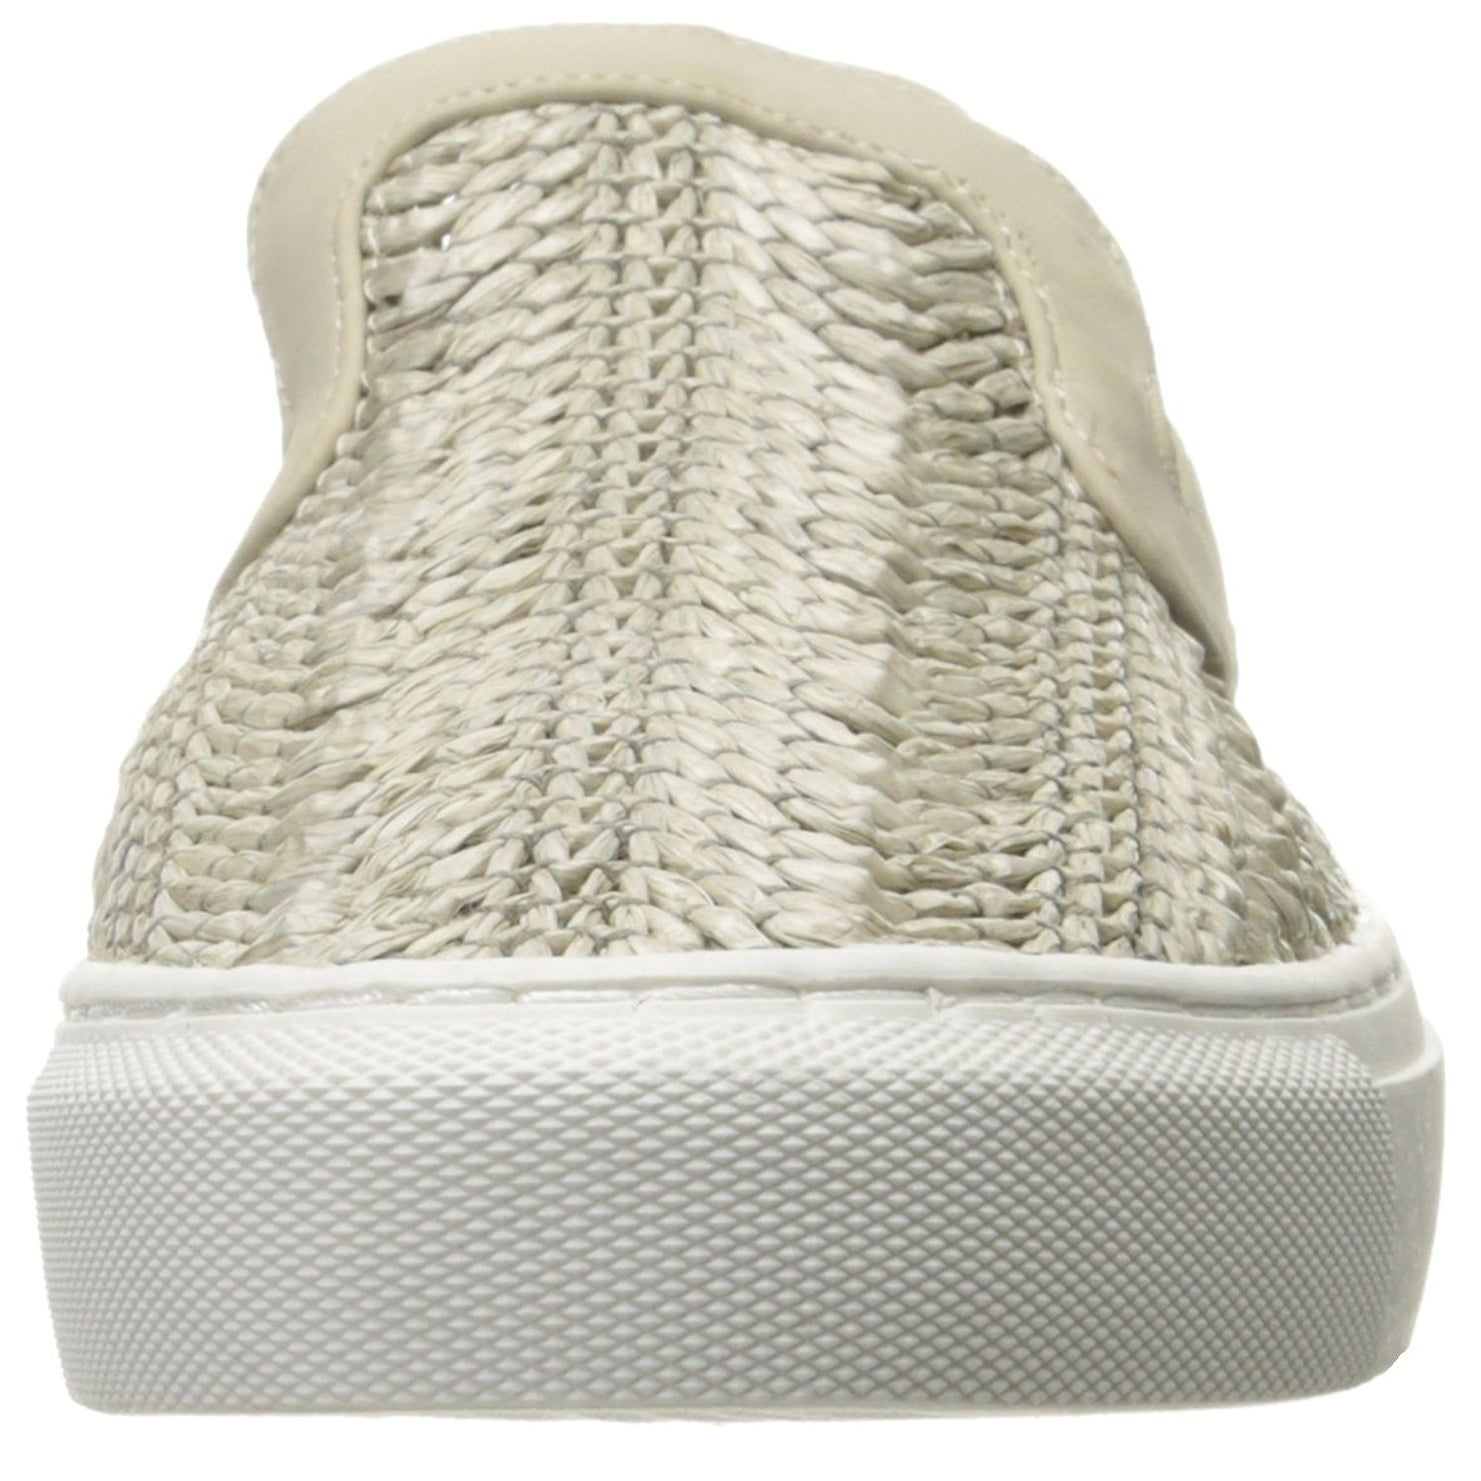 a43c0726c8f STEVEN by Steve Madden Womens Kenner Leather Low Top Slip On Fashion  Sneakers